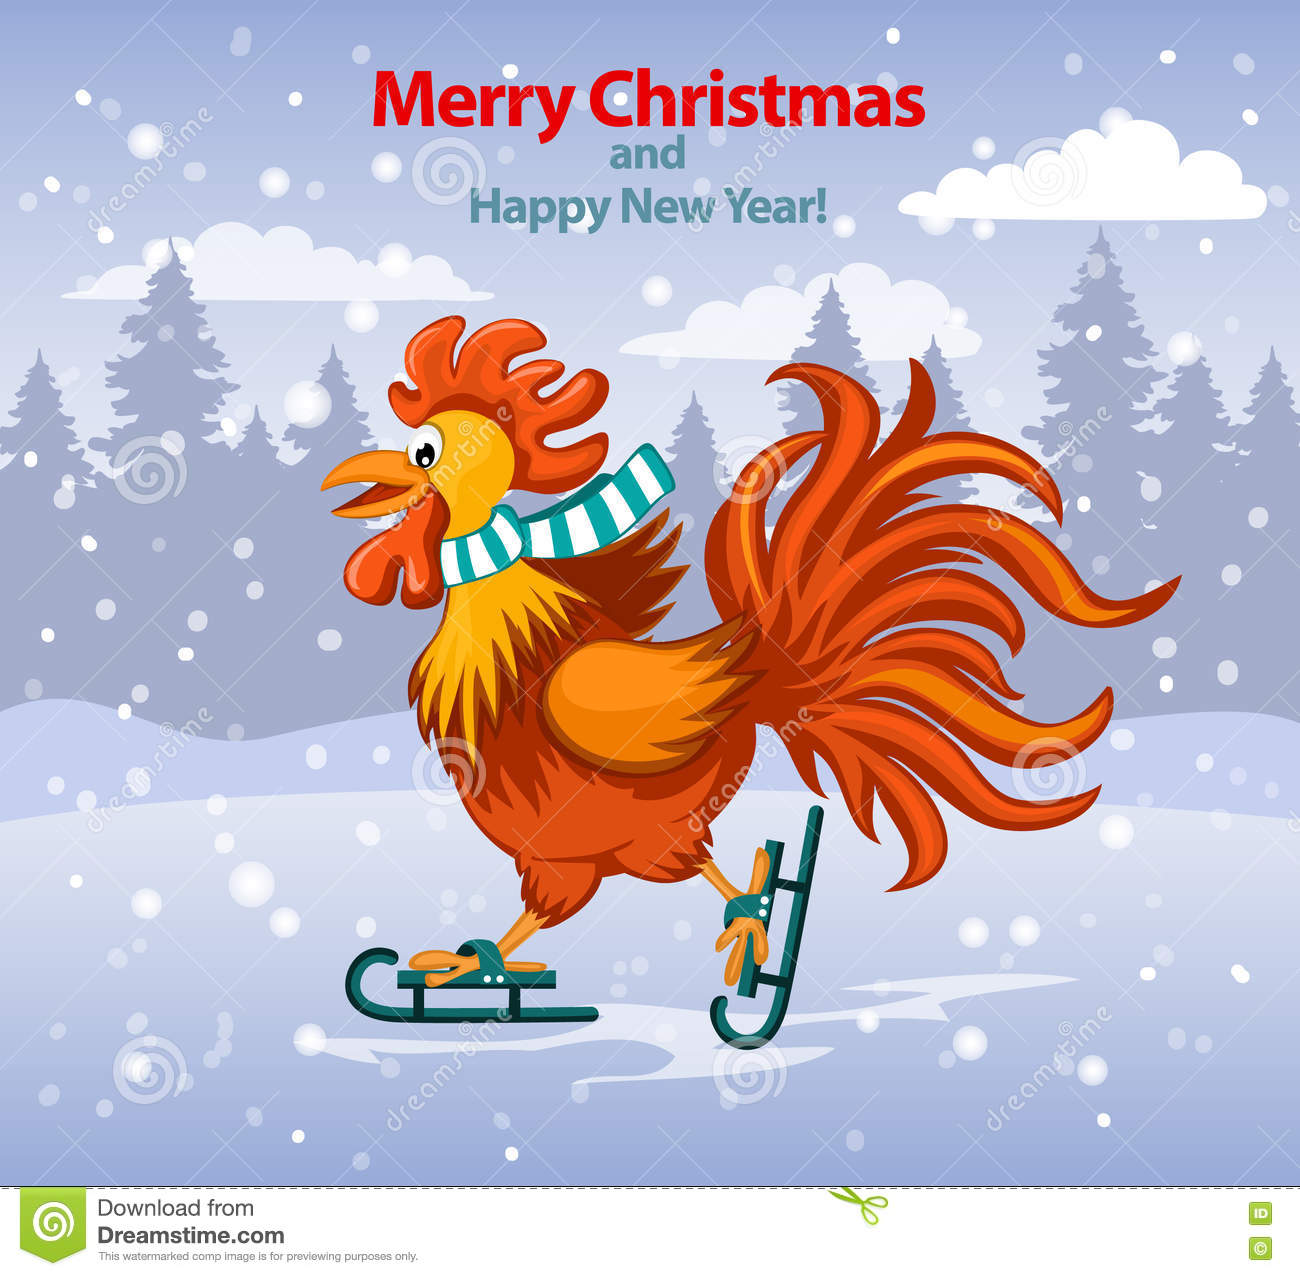 Download Merry Christmas And Happy New Year Greeting Card With Cute Funny  Rooster Ice Skating Stock